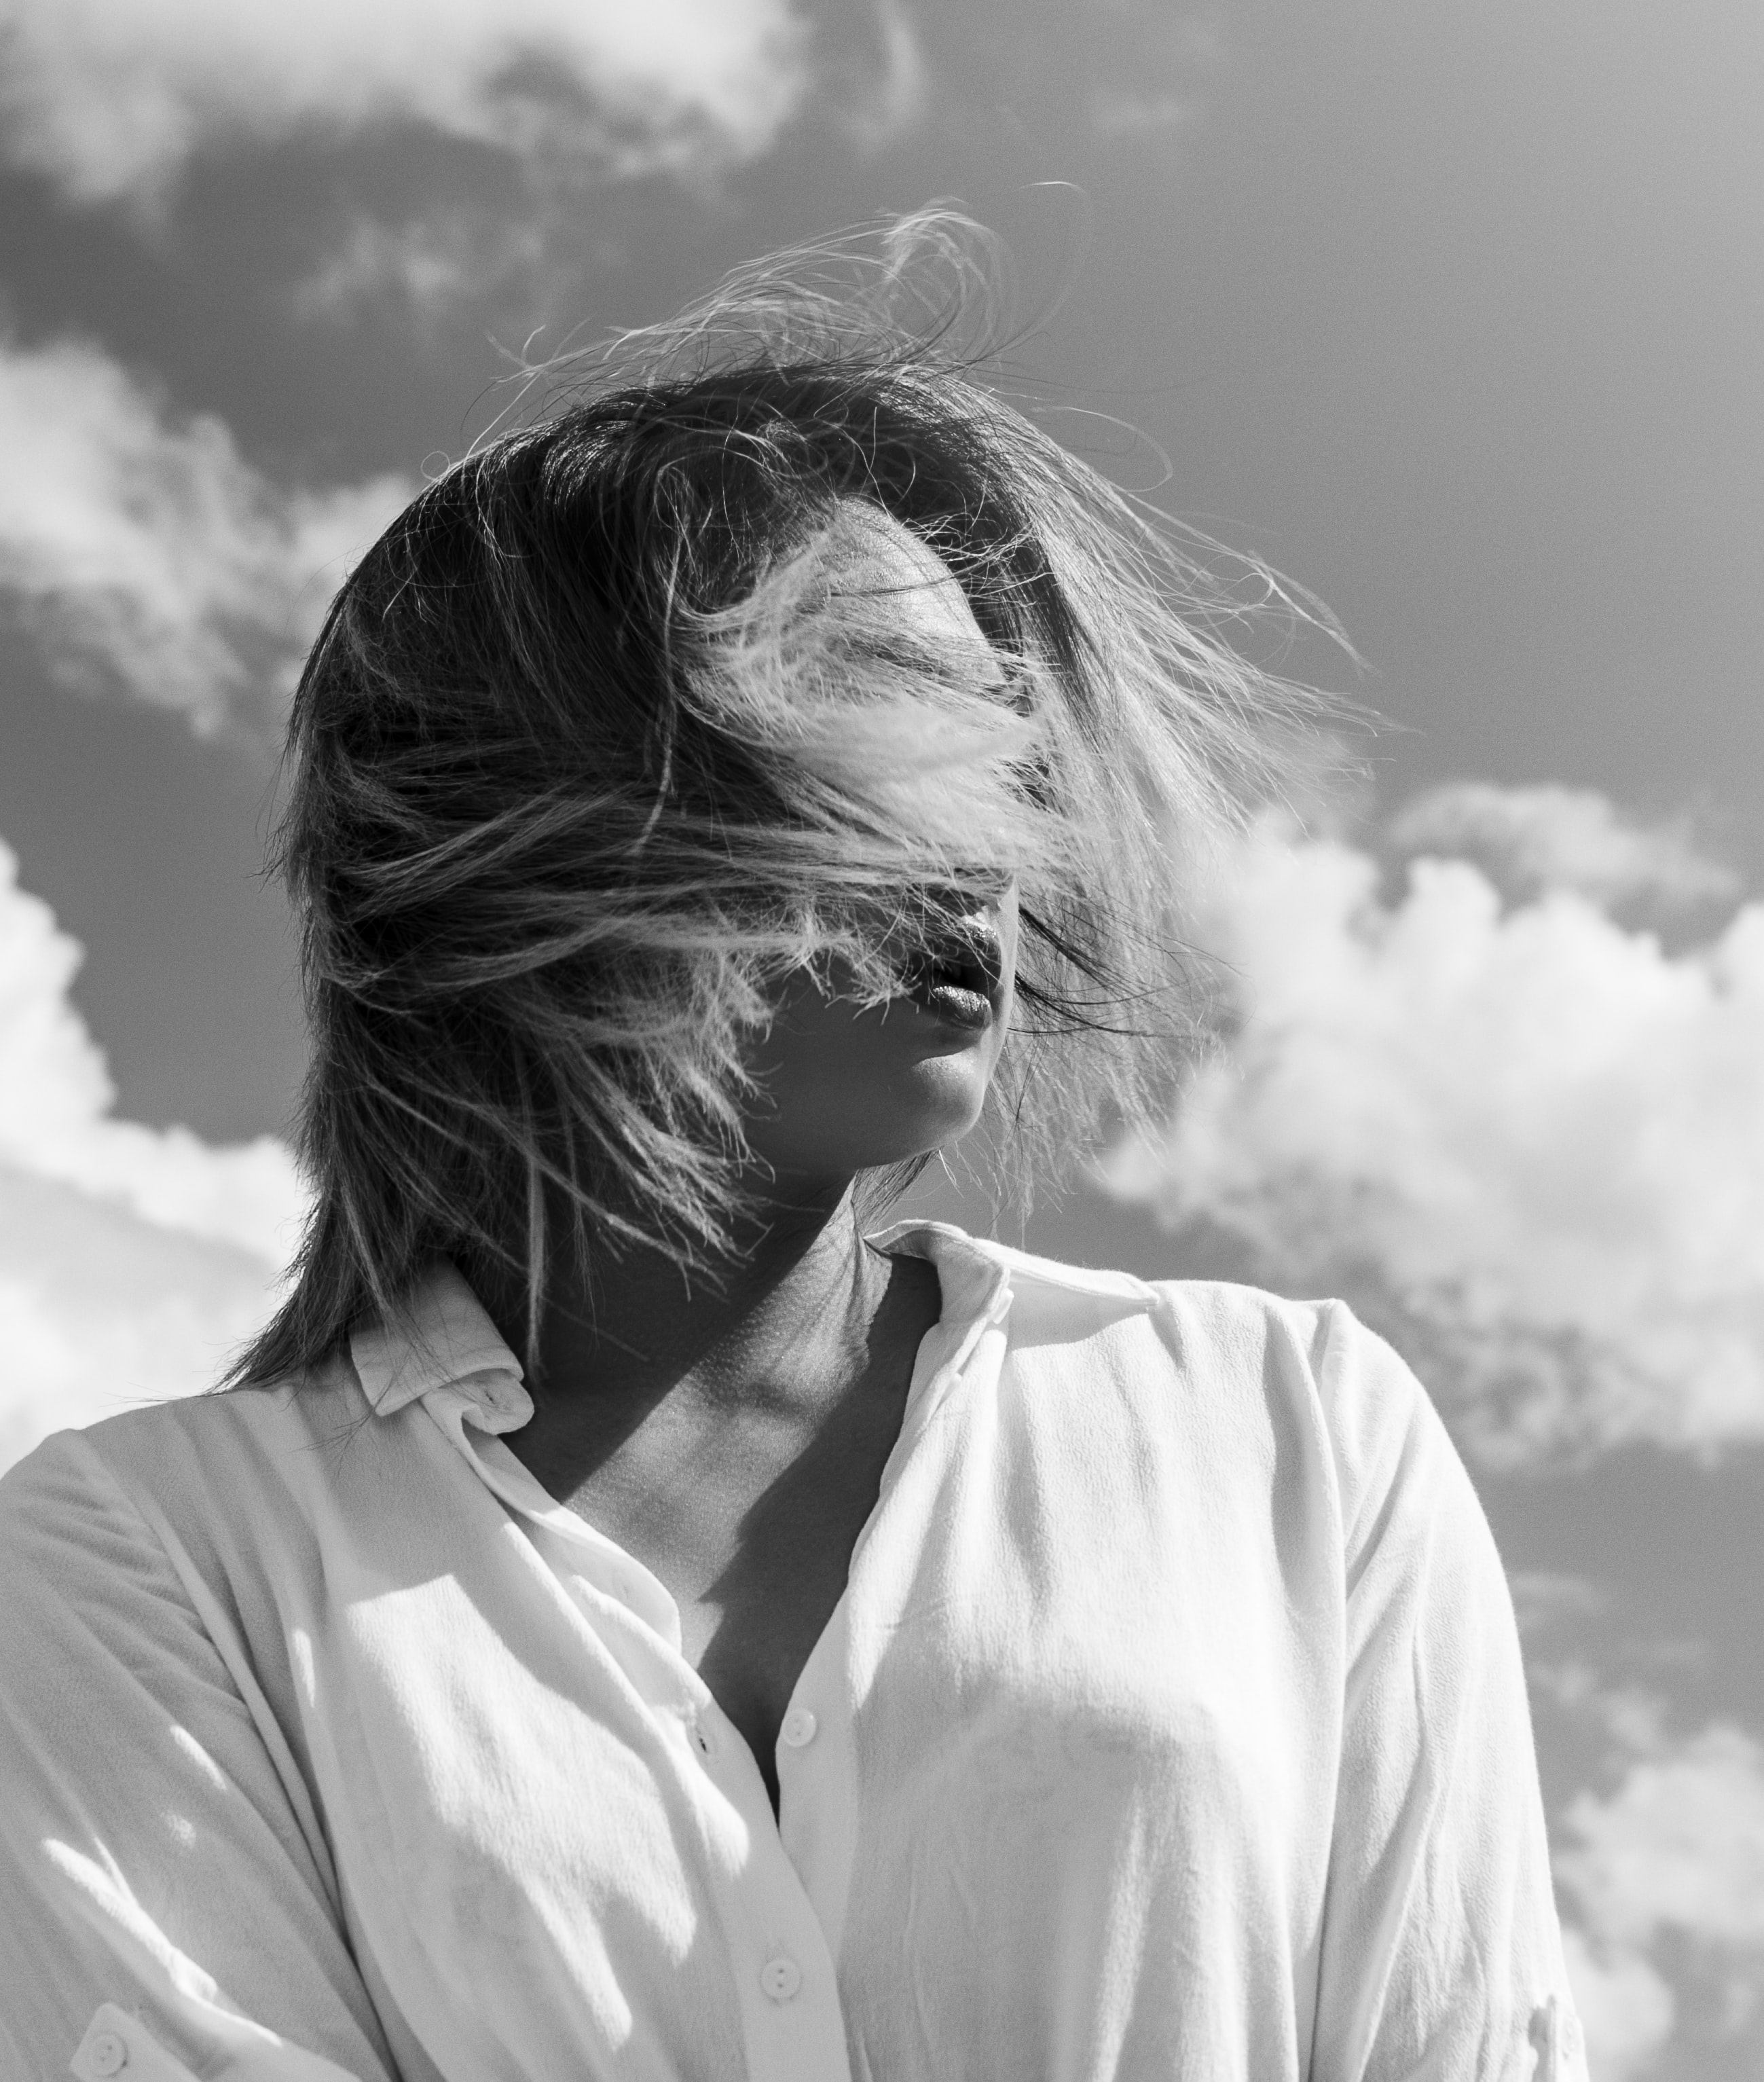 graysale photography of woman wearing collared top with face covered with wind-blown hair during daytime